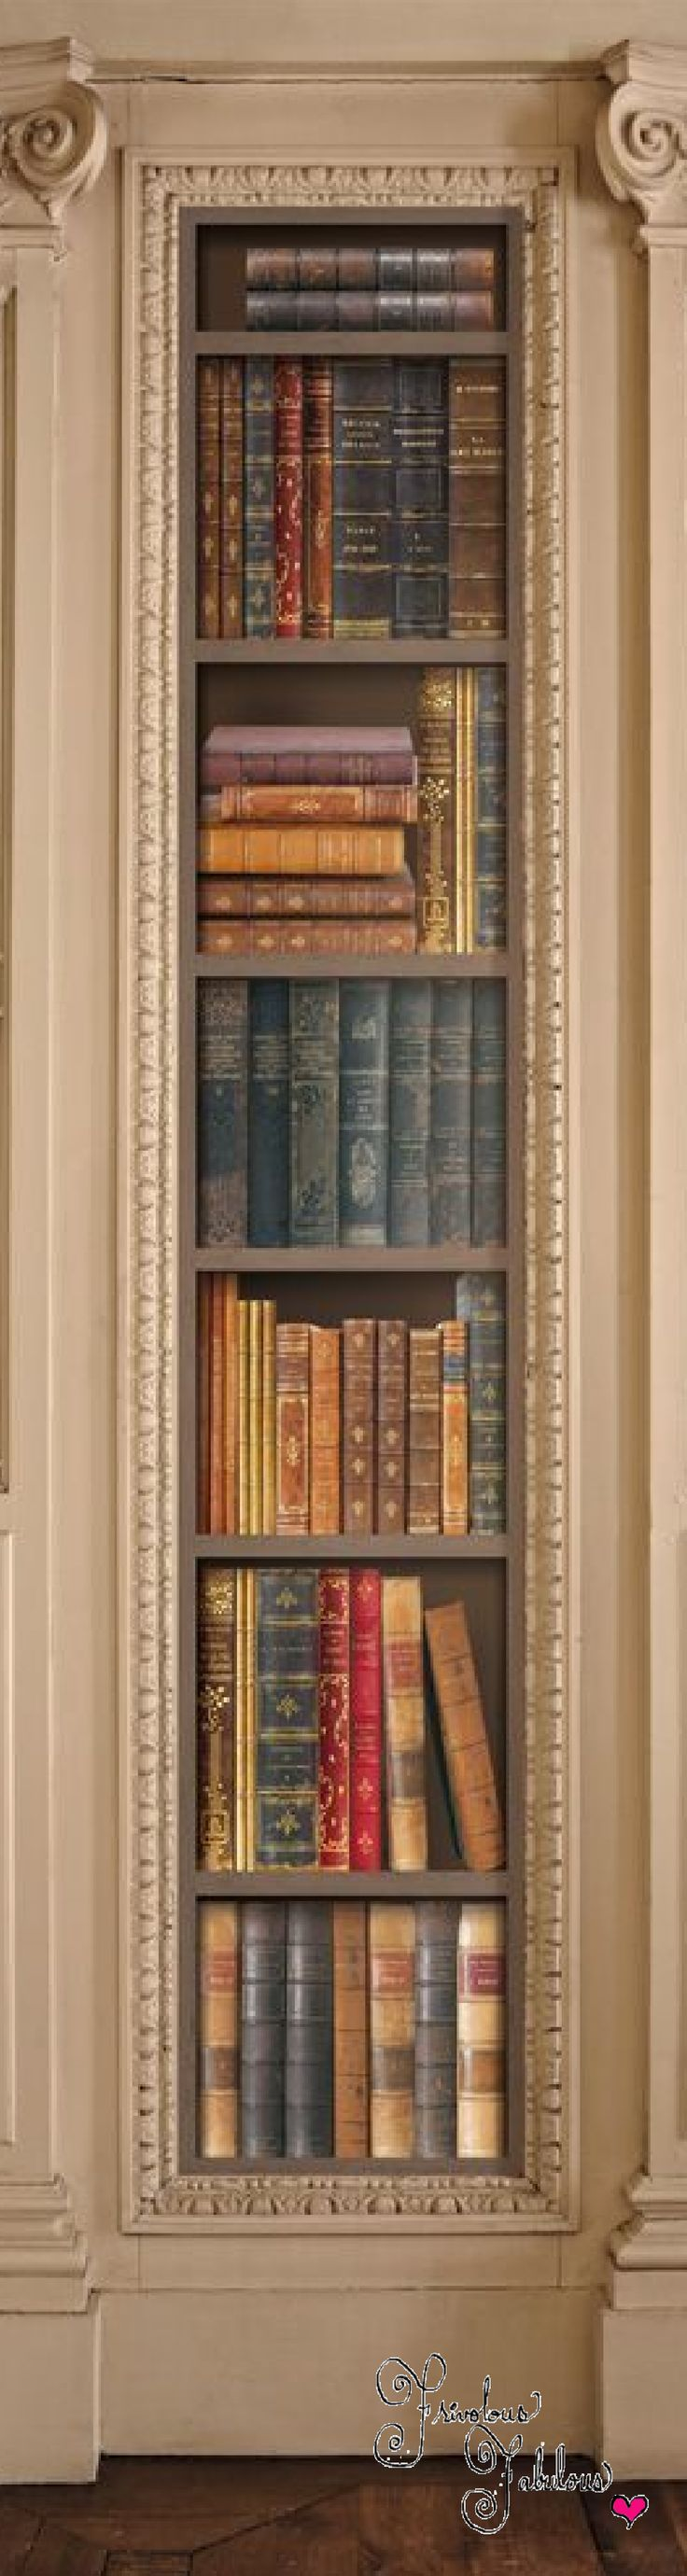 Shelf bookcases memorial wall displays antique white wall display - Find This Pin And More On Beautiful Bookcases By Marilynflodine